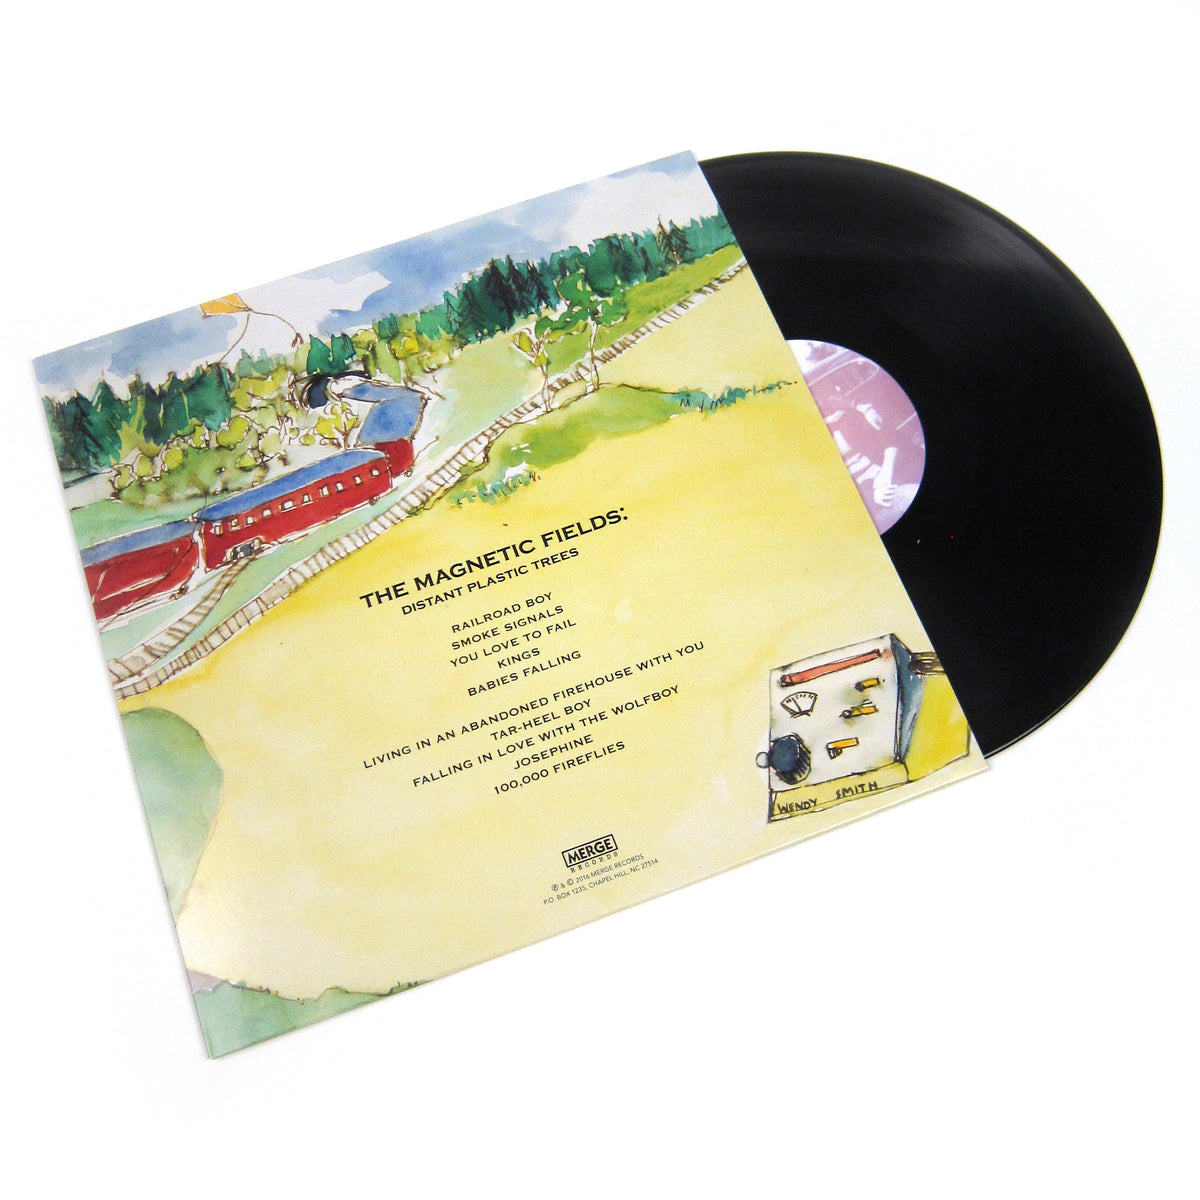 The Magnetic Fields: The Wayward Bus / Distant Plastic Trees Vinyl 2LP